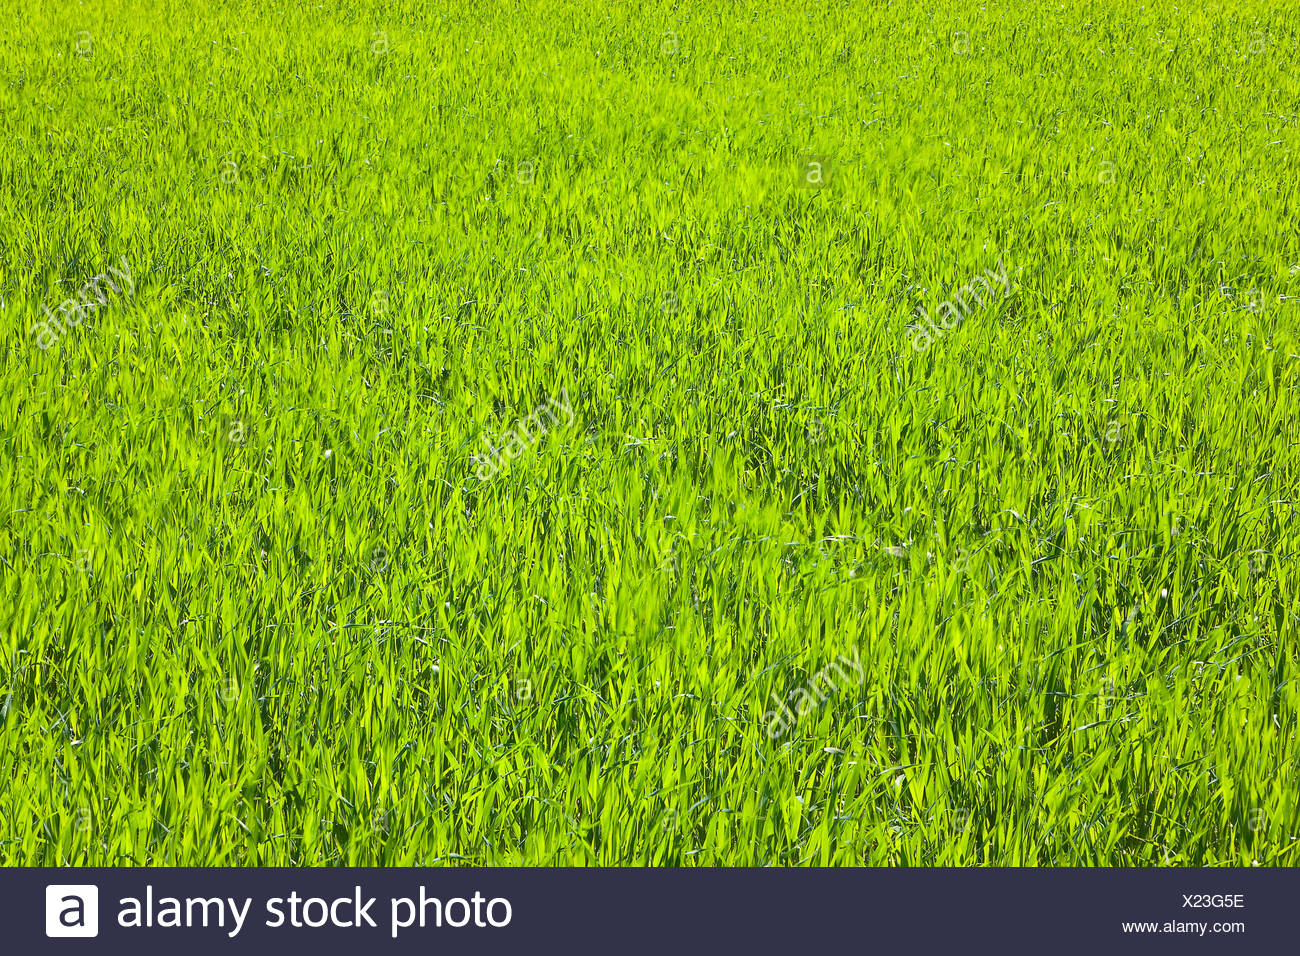 Nature, grass, plant, mowed, lawns, blades of grass, meadow, green - Stock Image